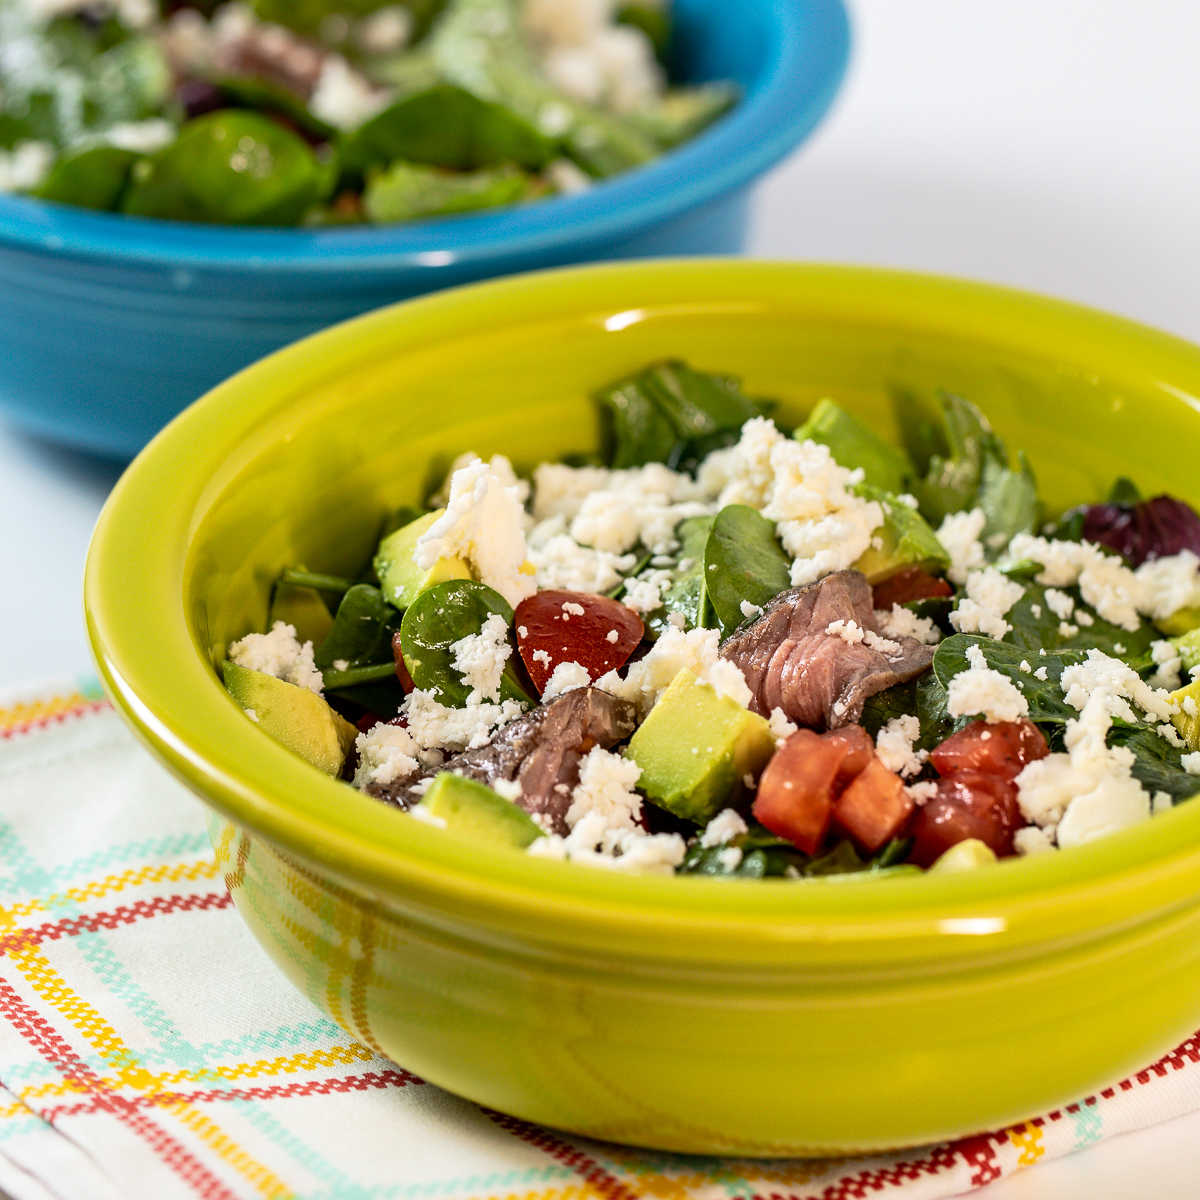 20 Minute Mexican Steak Salad